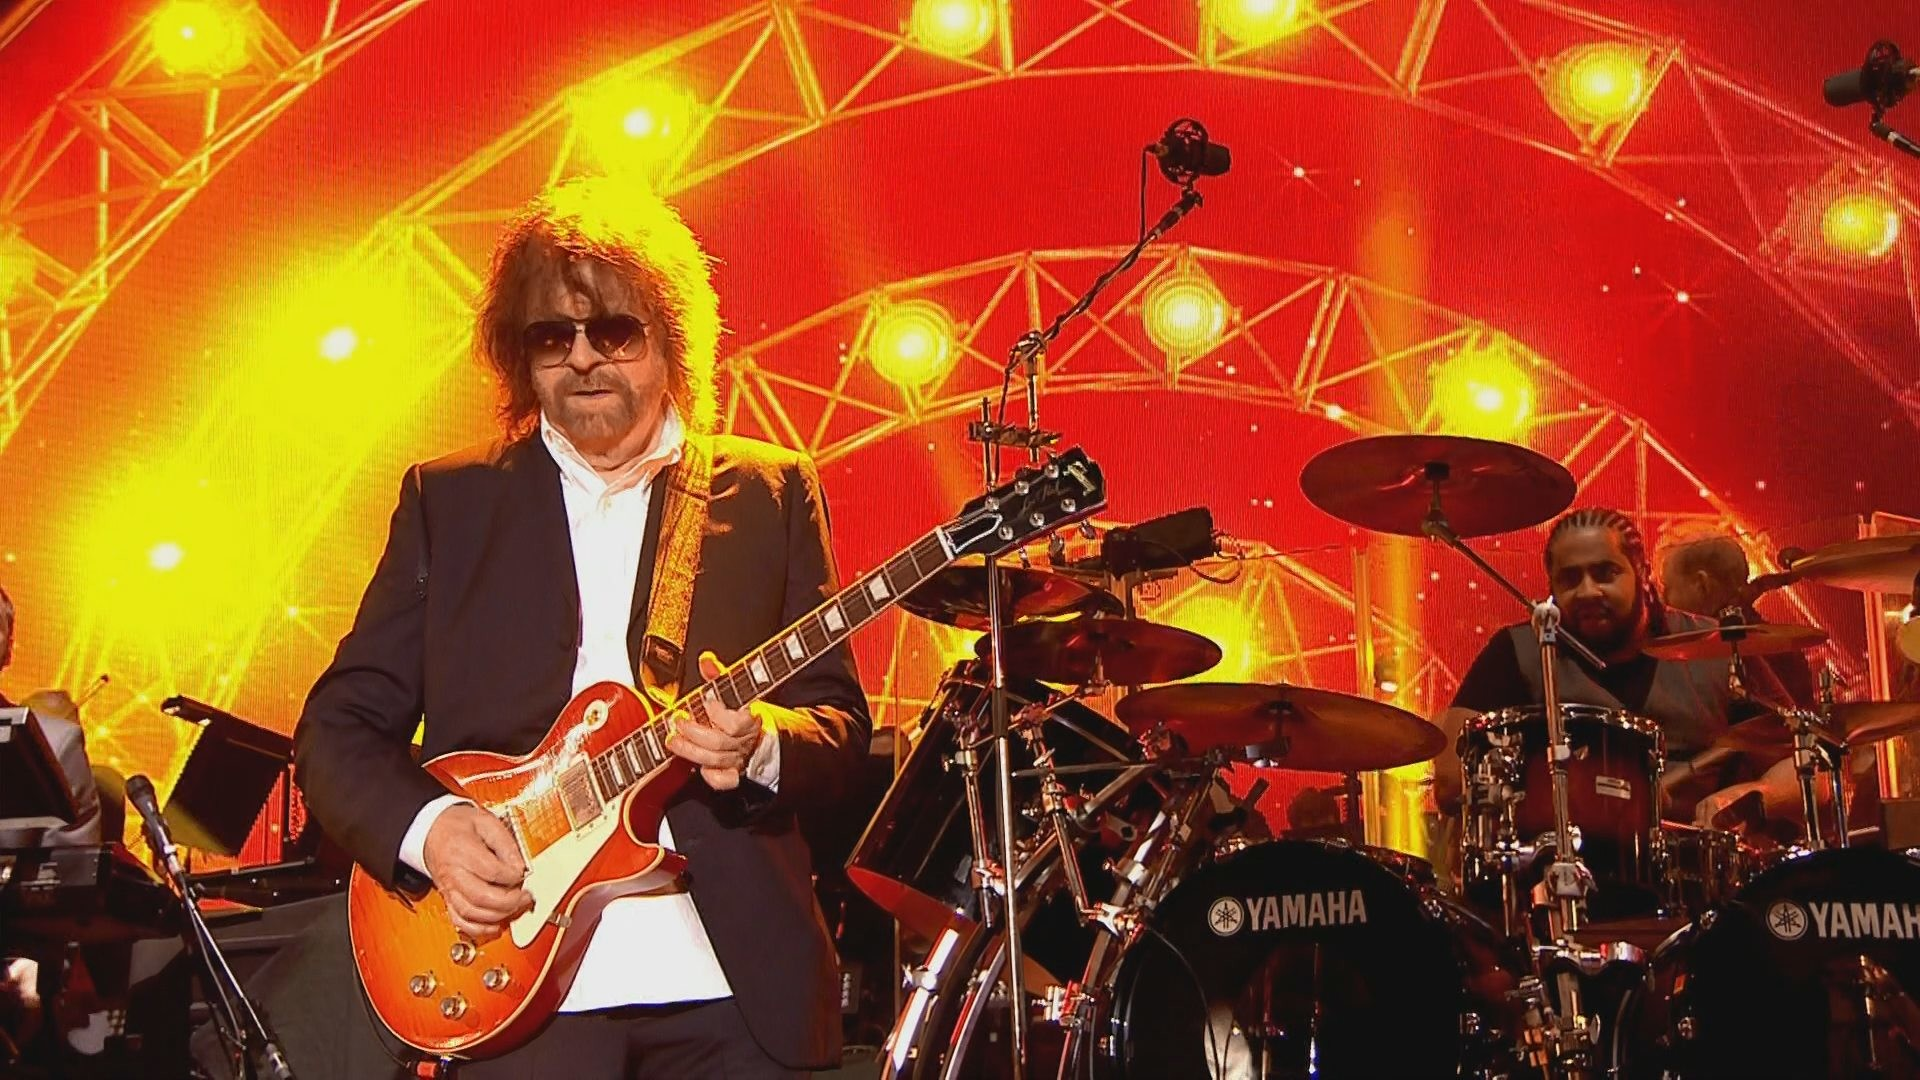 electric light orchestra wallpaper 62 images